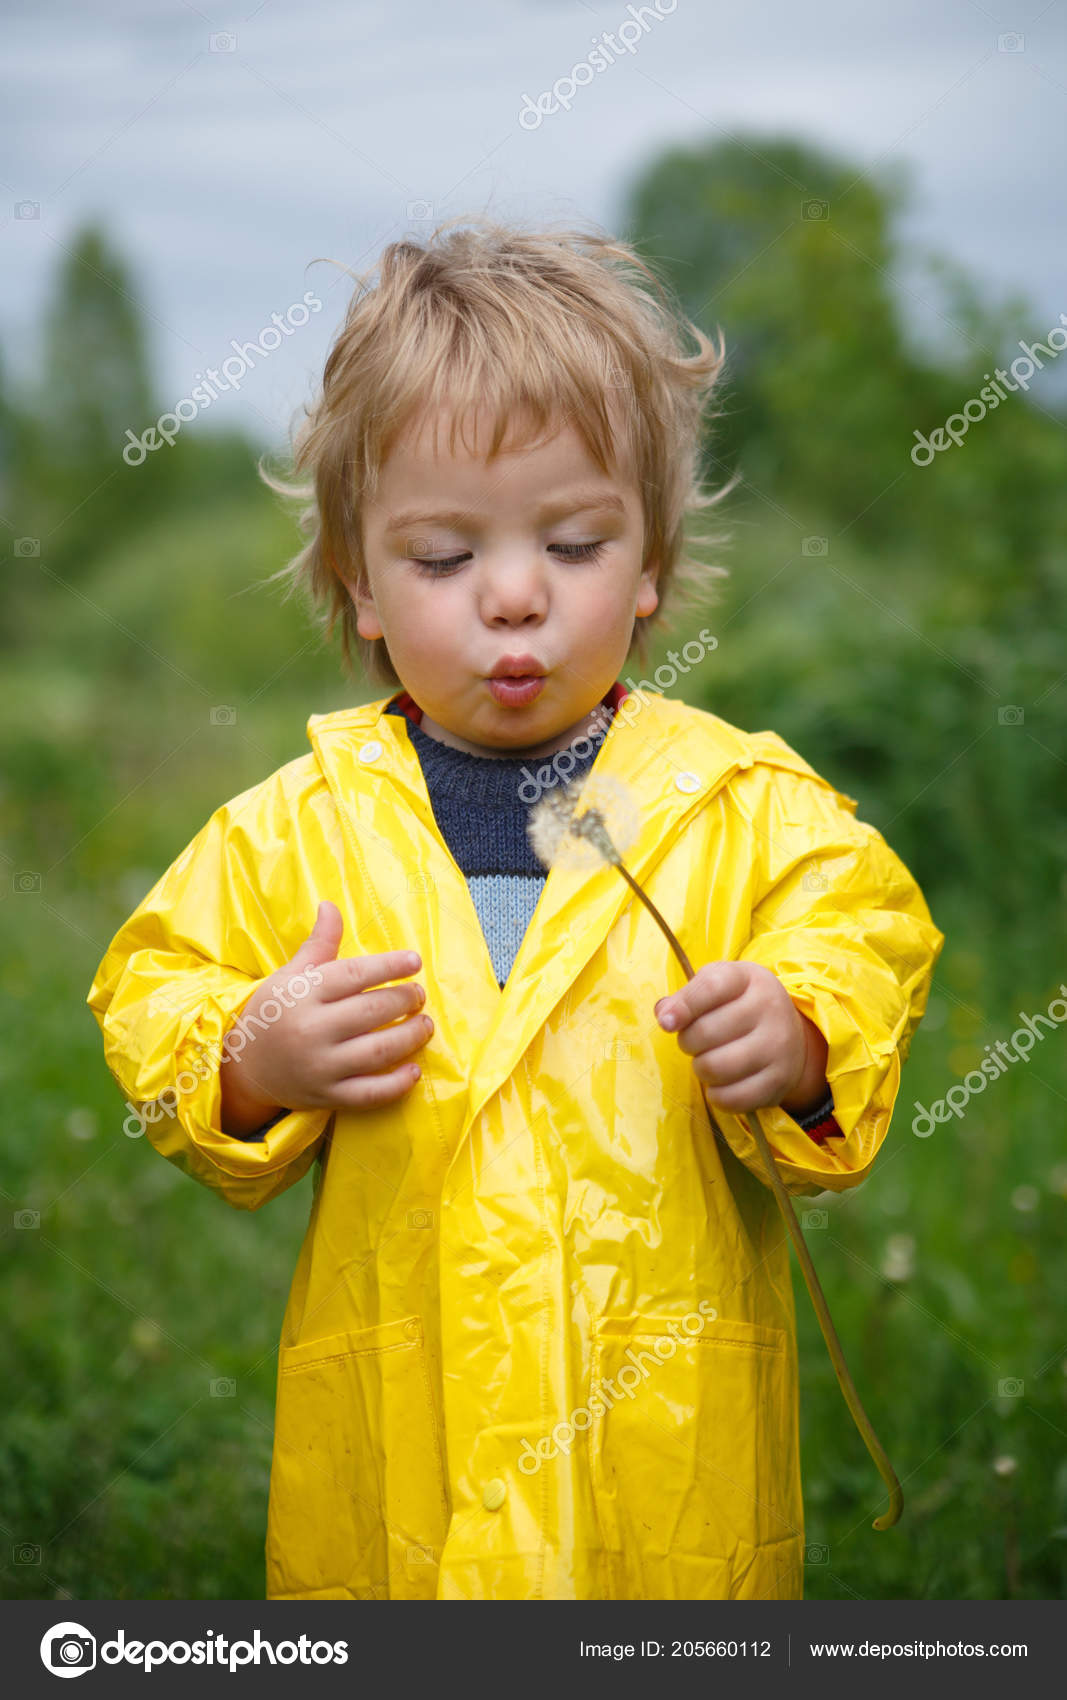 e95b32a4c Small Child Yellow Raincoat Blows Bouquet Couch Potatoes Summer Day ...